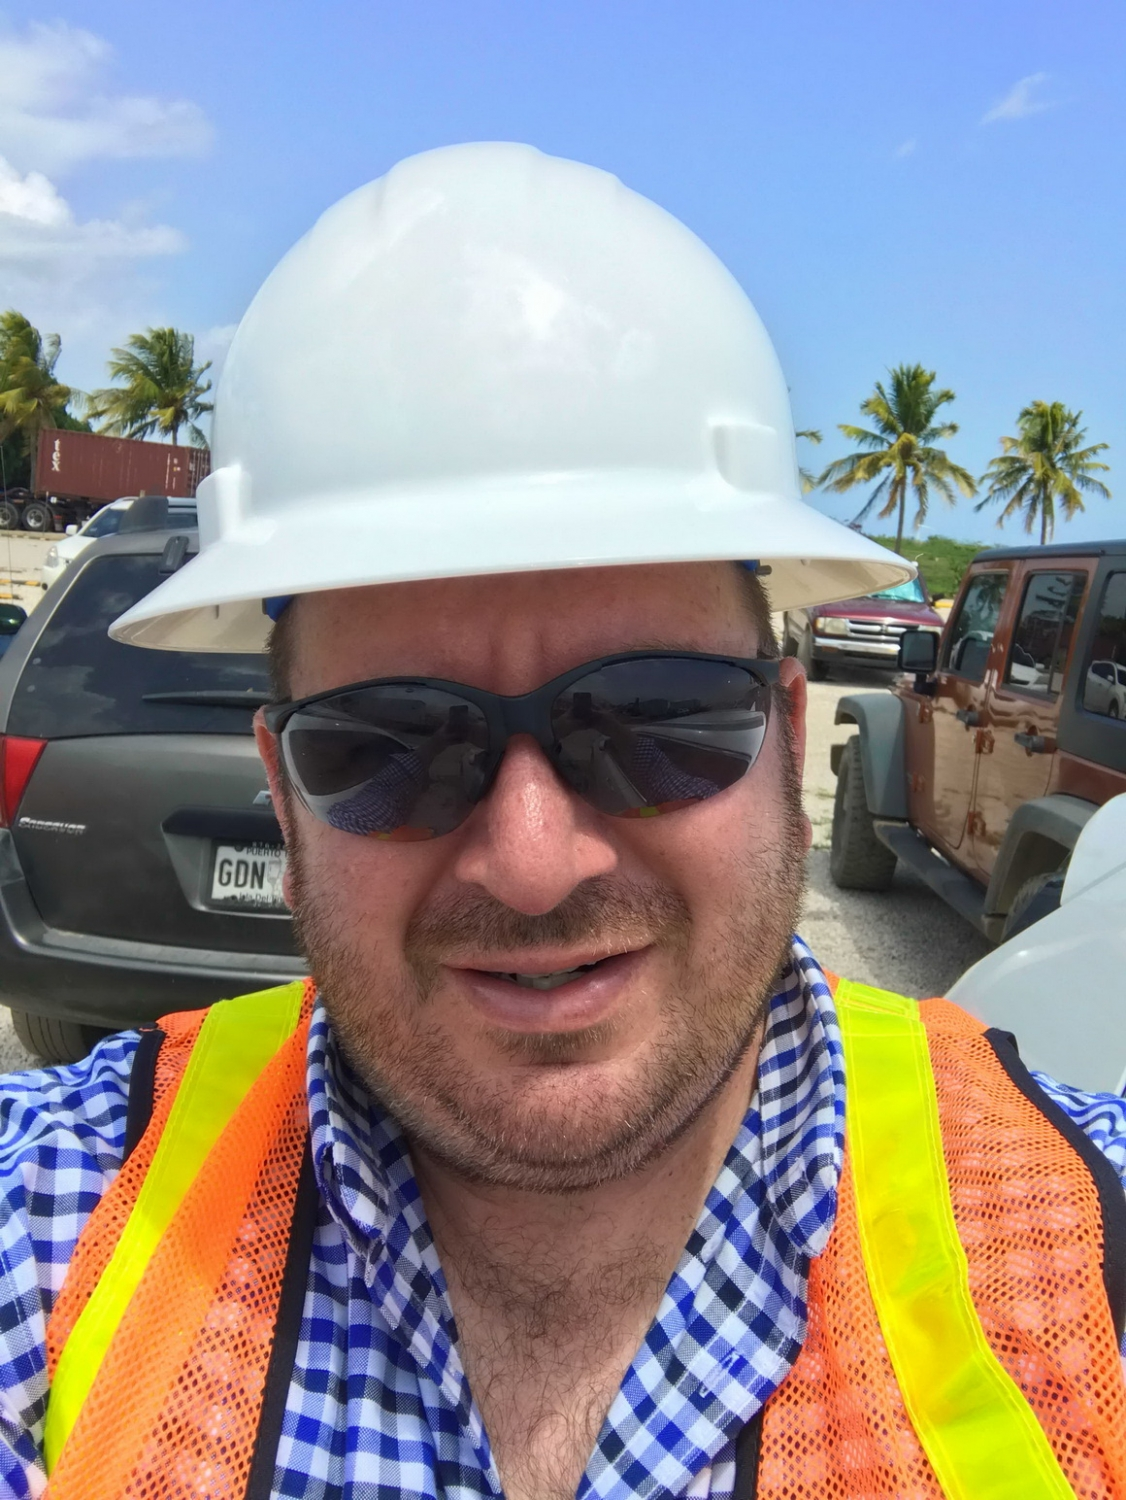 James Roberts, ATI Technical Support, visited the site three times during construction